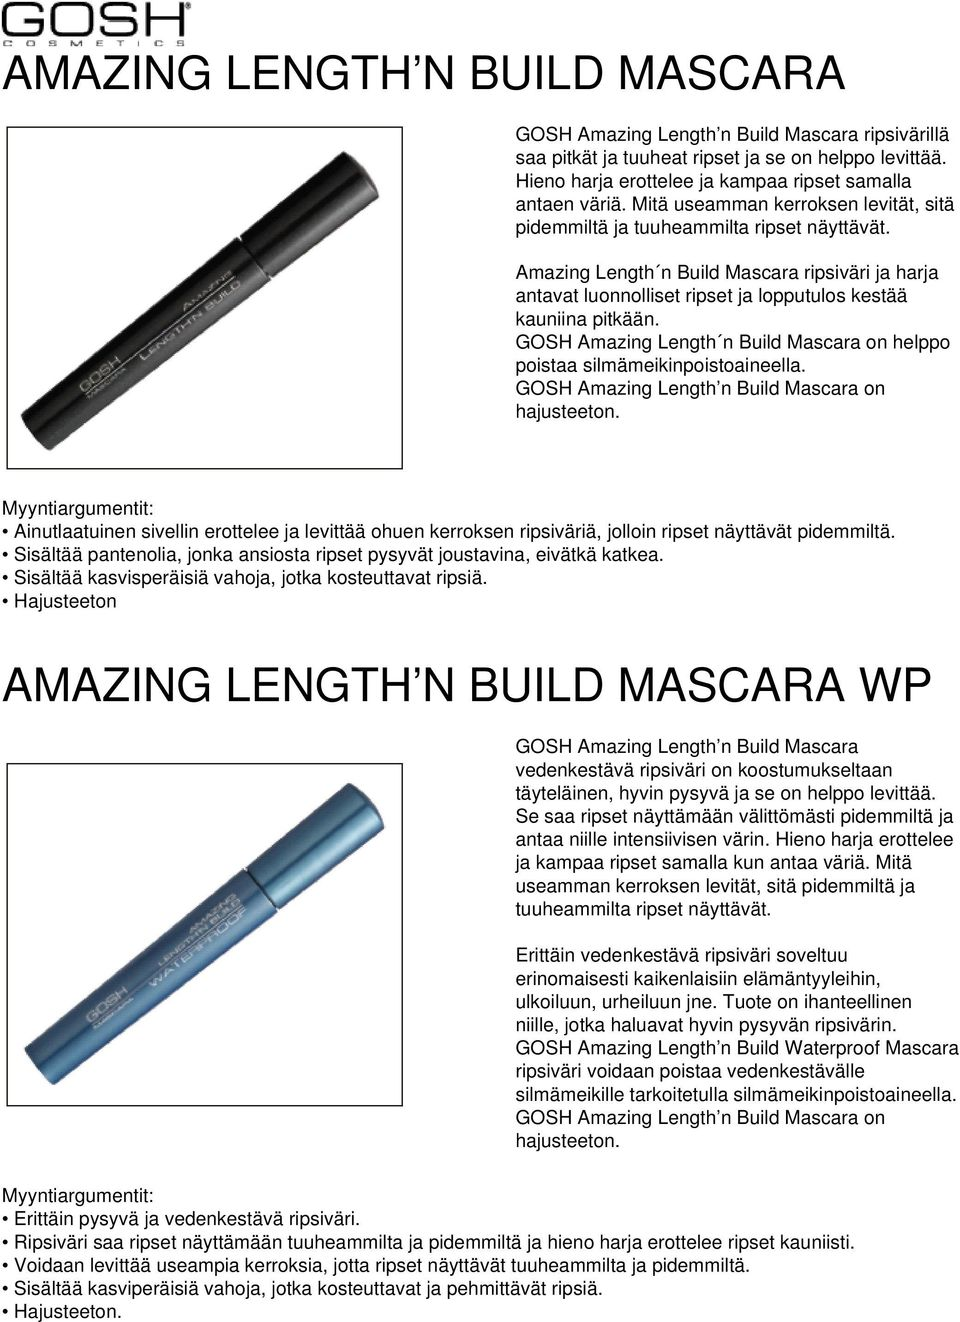 GOSH Amazing Length n Build Mascara on helppo poistaa silmämeikinpoistoaineella. GOSH Amazing Length n Build Mascara on hajusteeton.